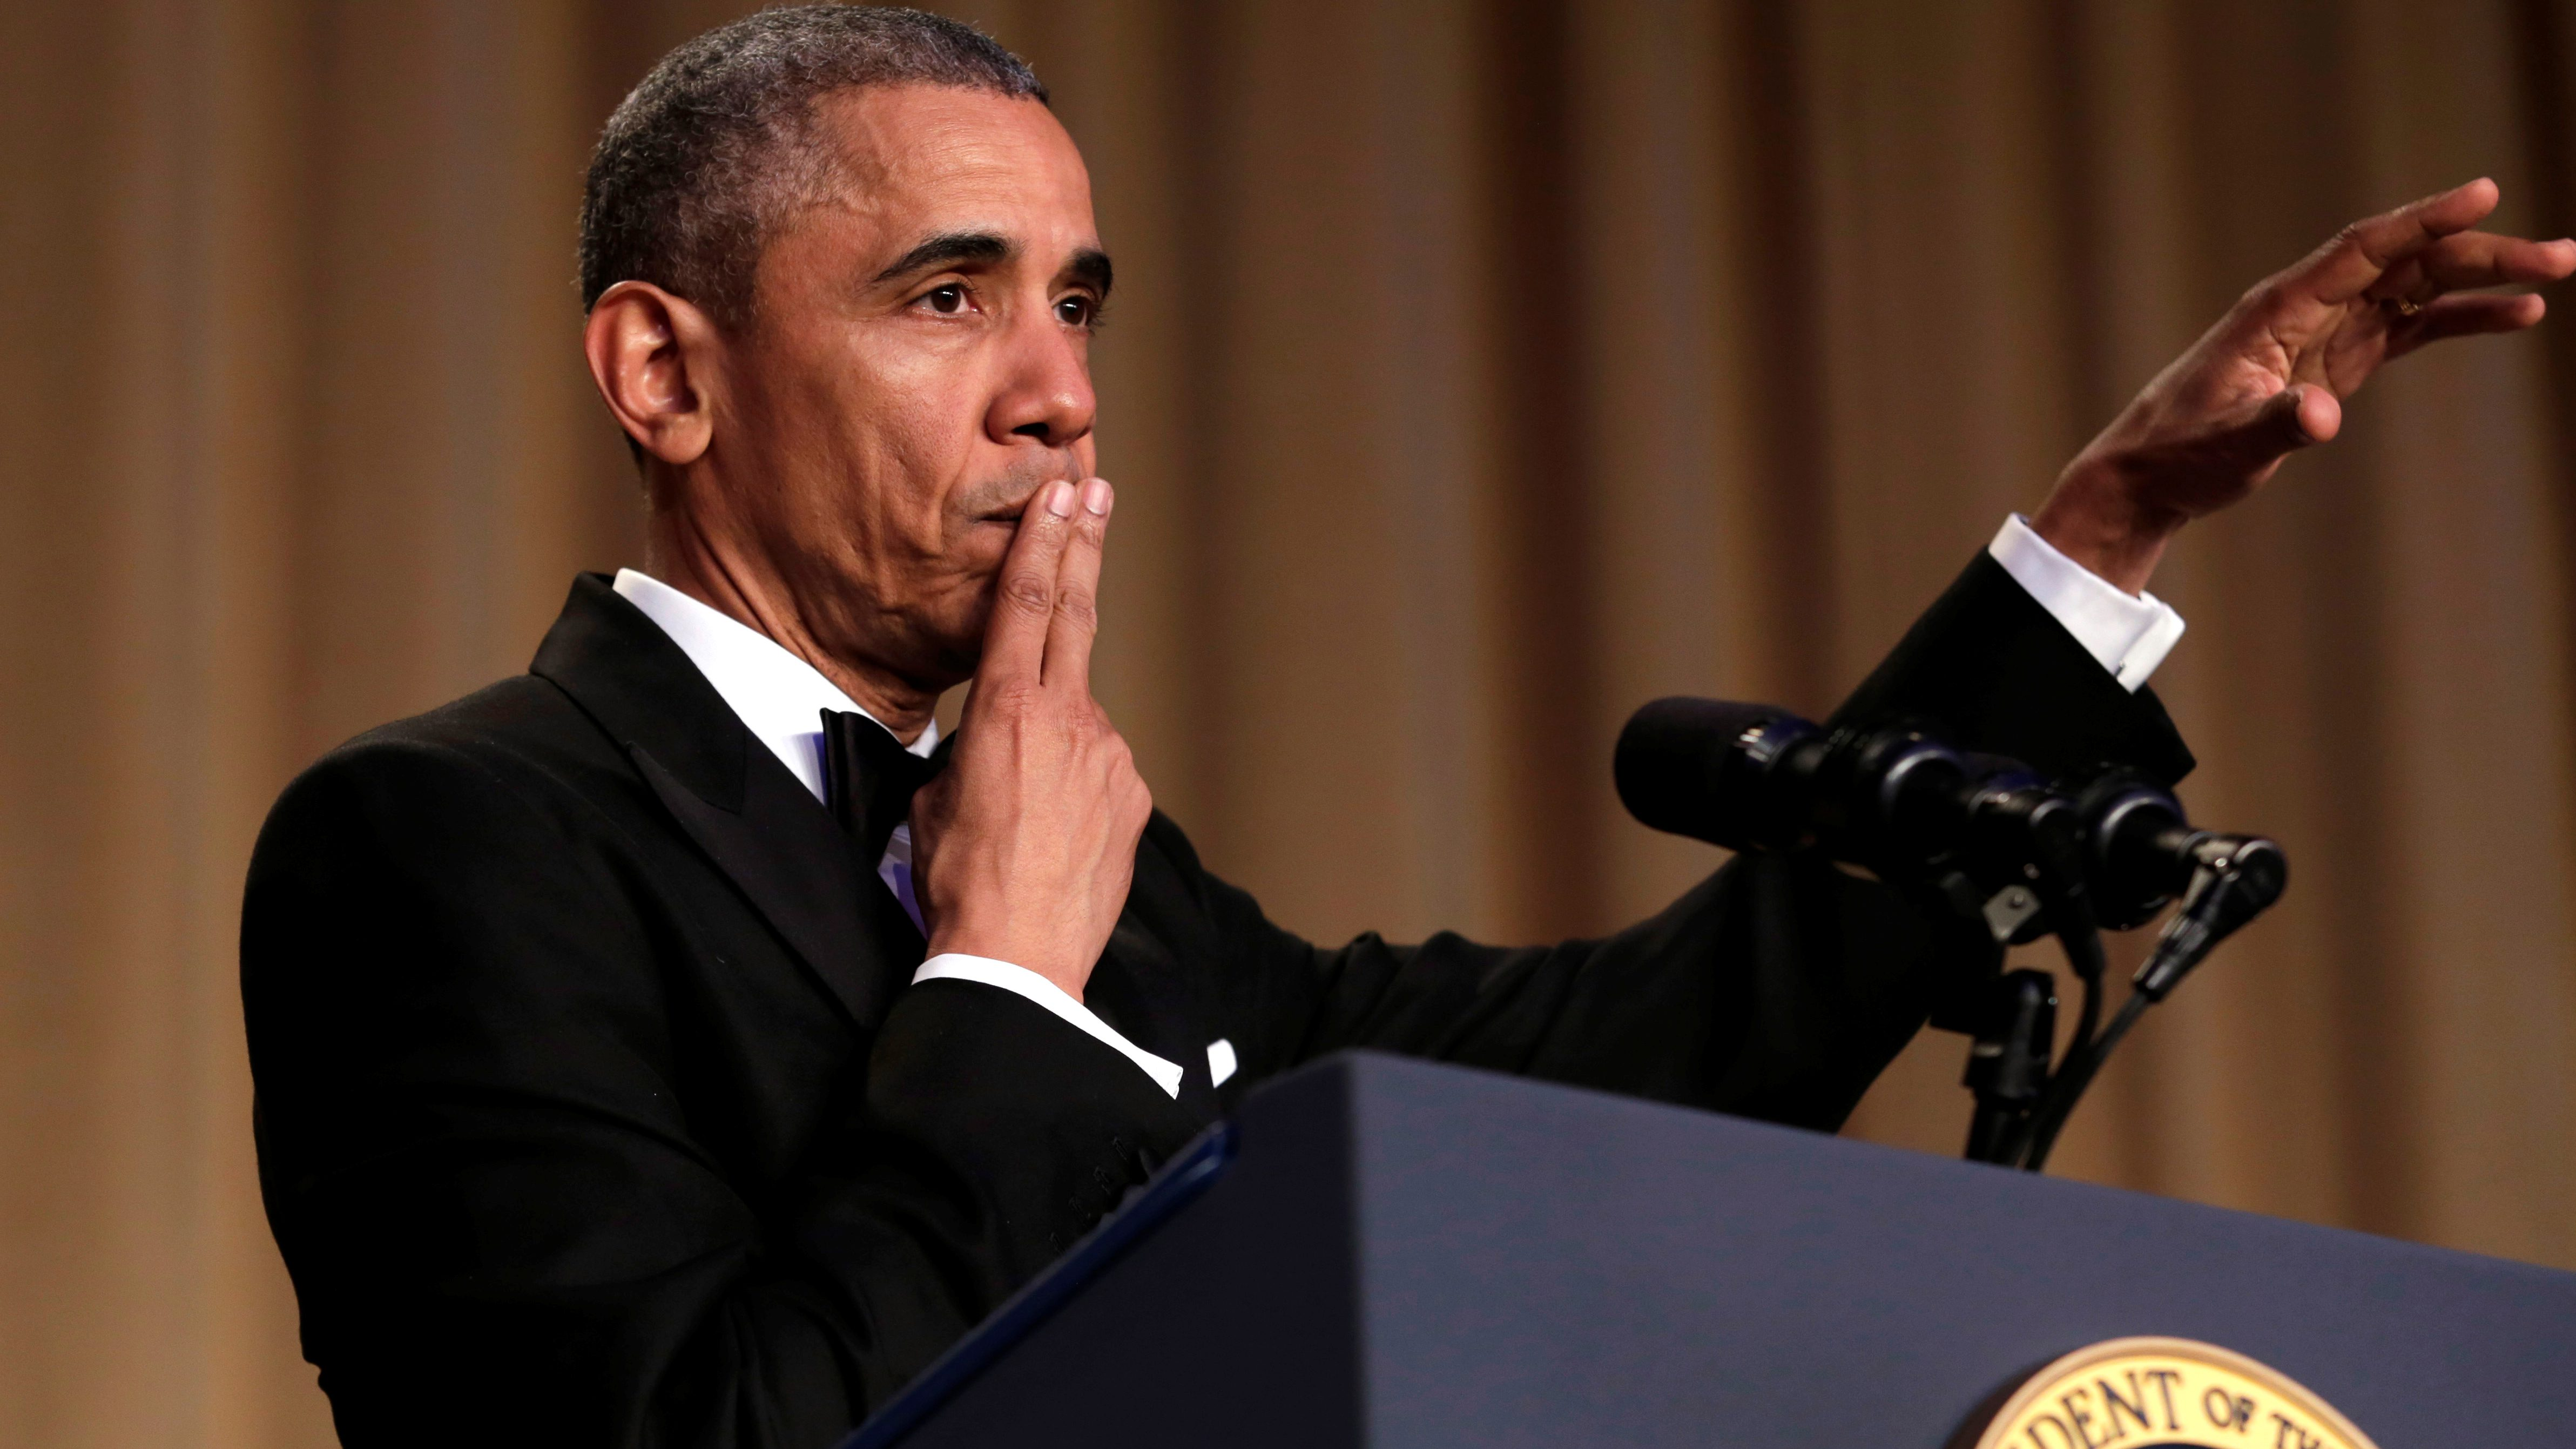 """U.S. President Barack Obama says """"Obama out!"""" at the White House Correspondents' Association annual dinner in Washington, U.S., April 30, 2016. REUTERS/Yuri Gripas      TPX IMAGES OF THE DAY      - RTX2C9WT"""